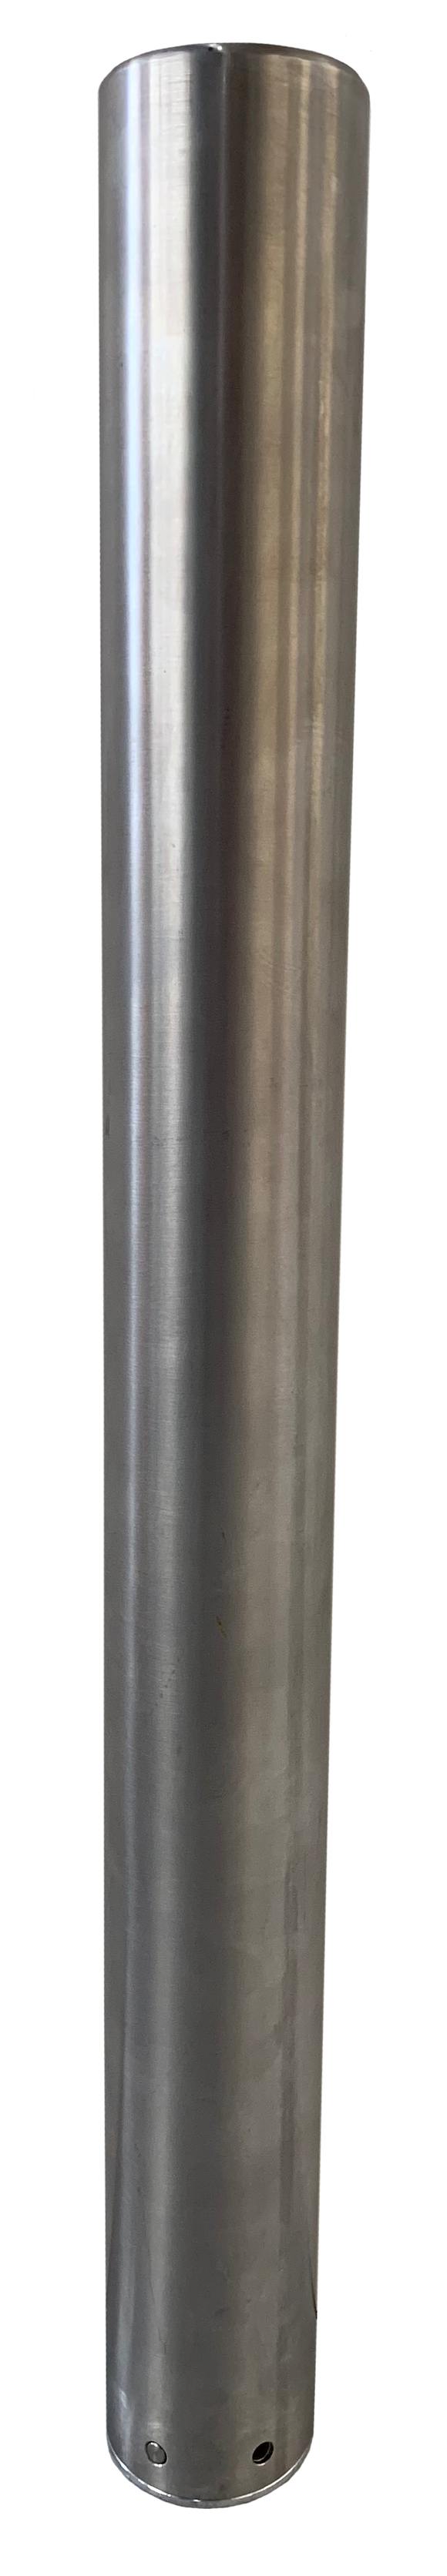 Stainless Steel Bollard - Small